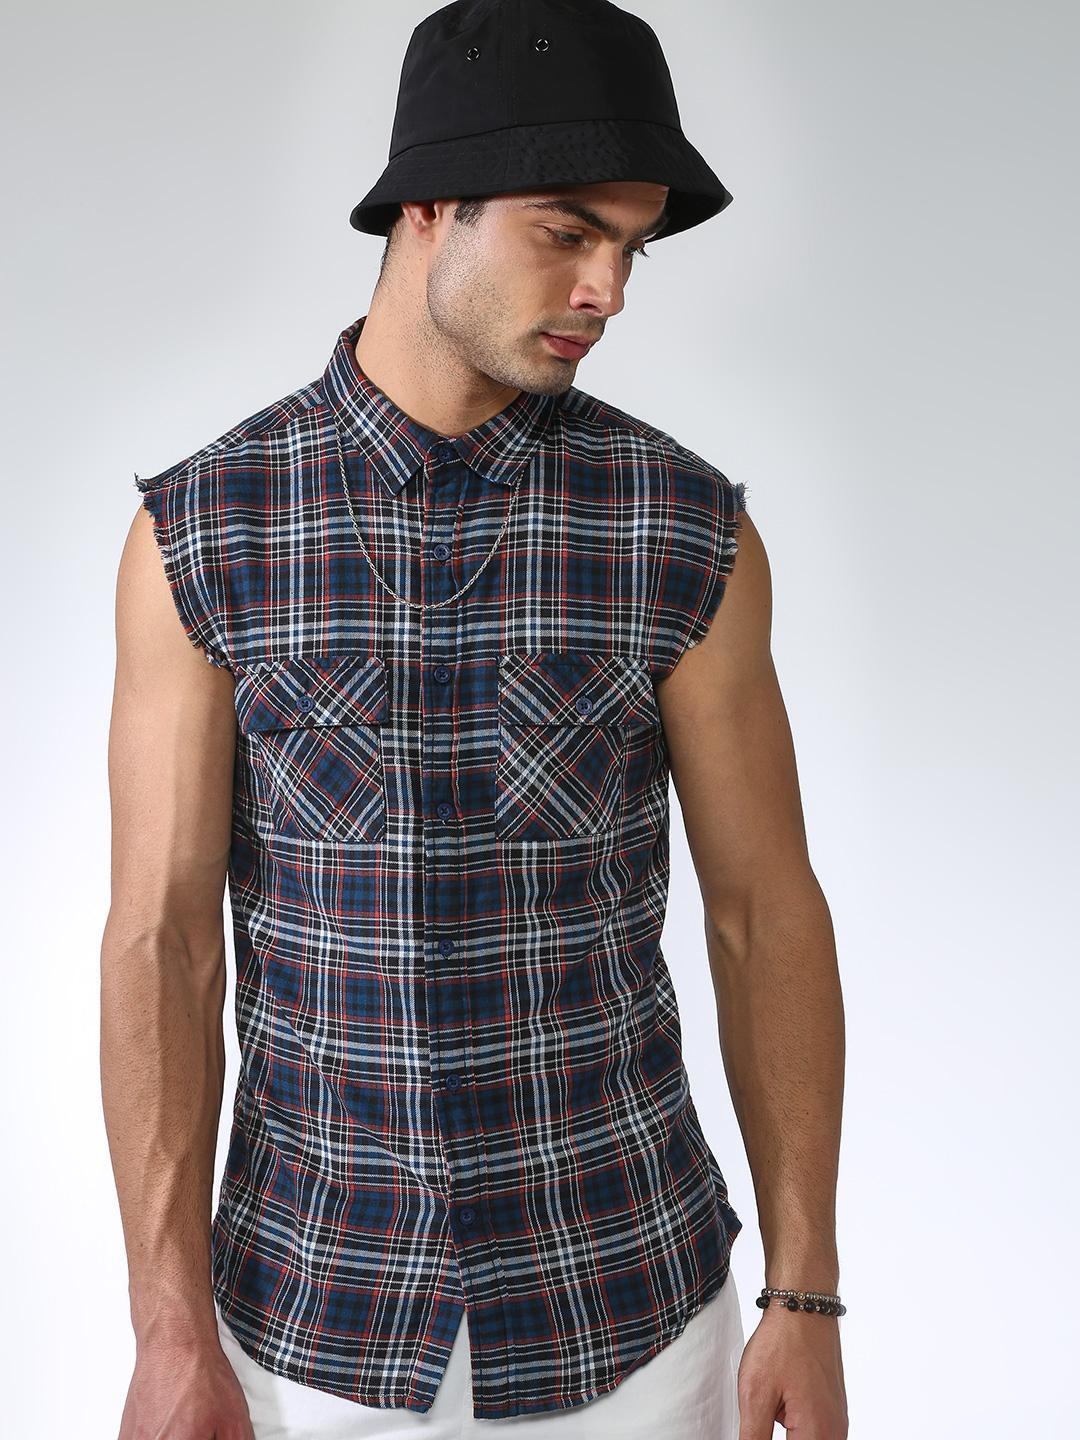 Blue Saint Multi Gingham Check Raw Edge Sleeveless Shirt 1